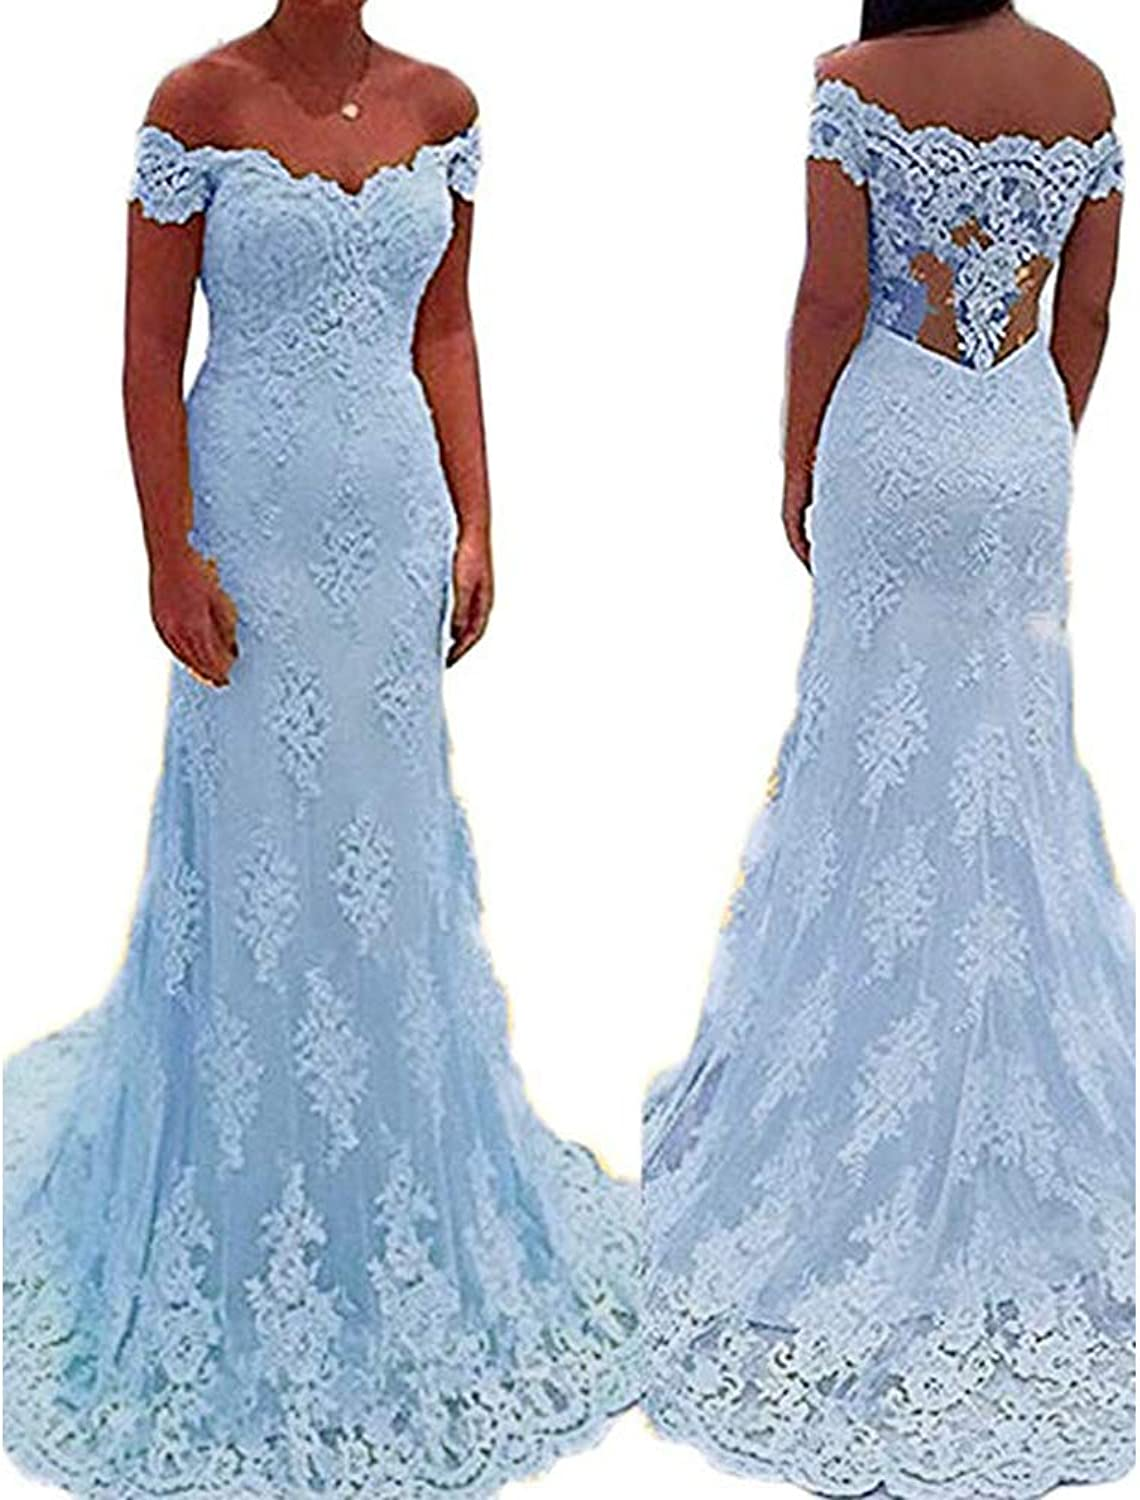 YNQNFS Women's lace Appliques Homecoming Prom Long Dresses Mermaid Bridesmaids Gowns